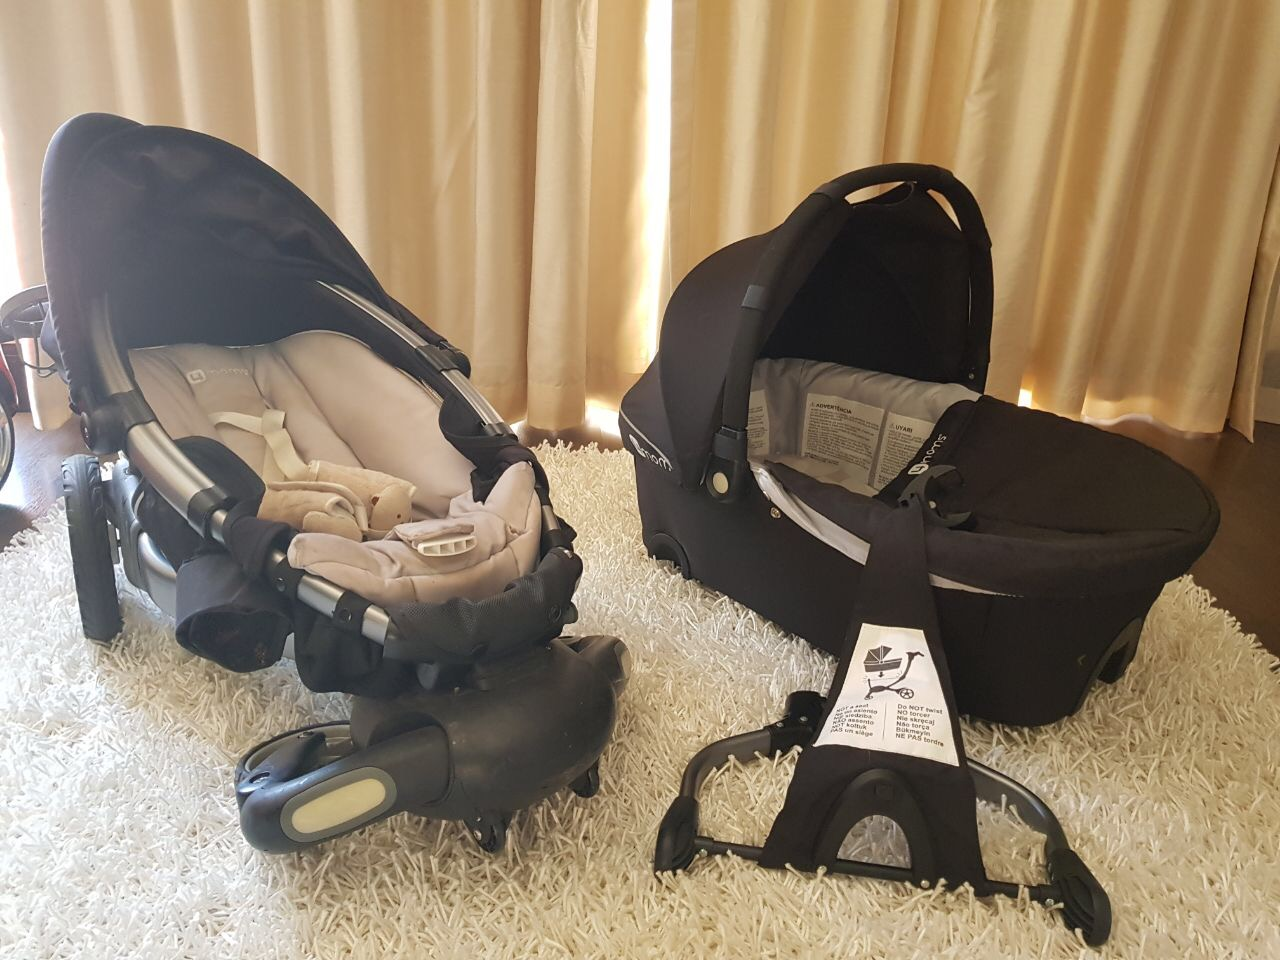 Baby Items - Origami pram, bassinet and car-seat